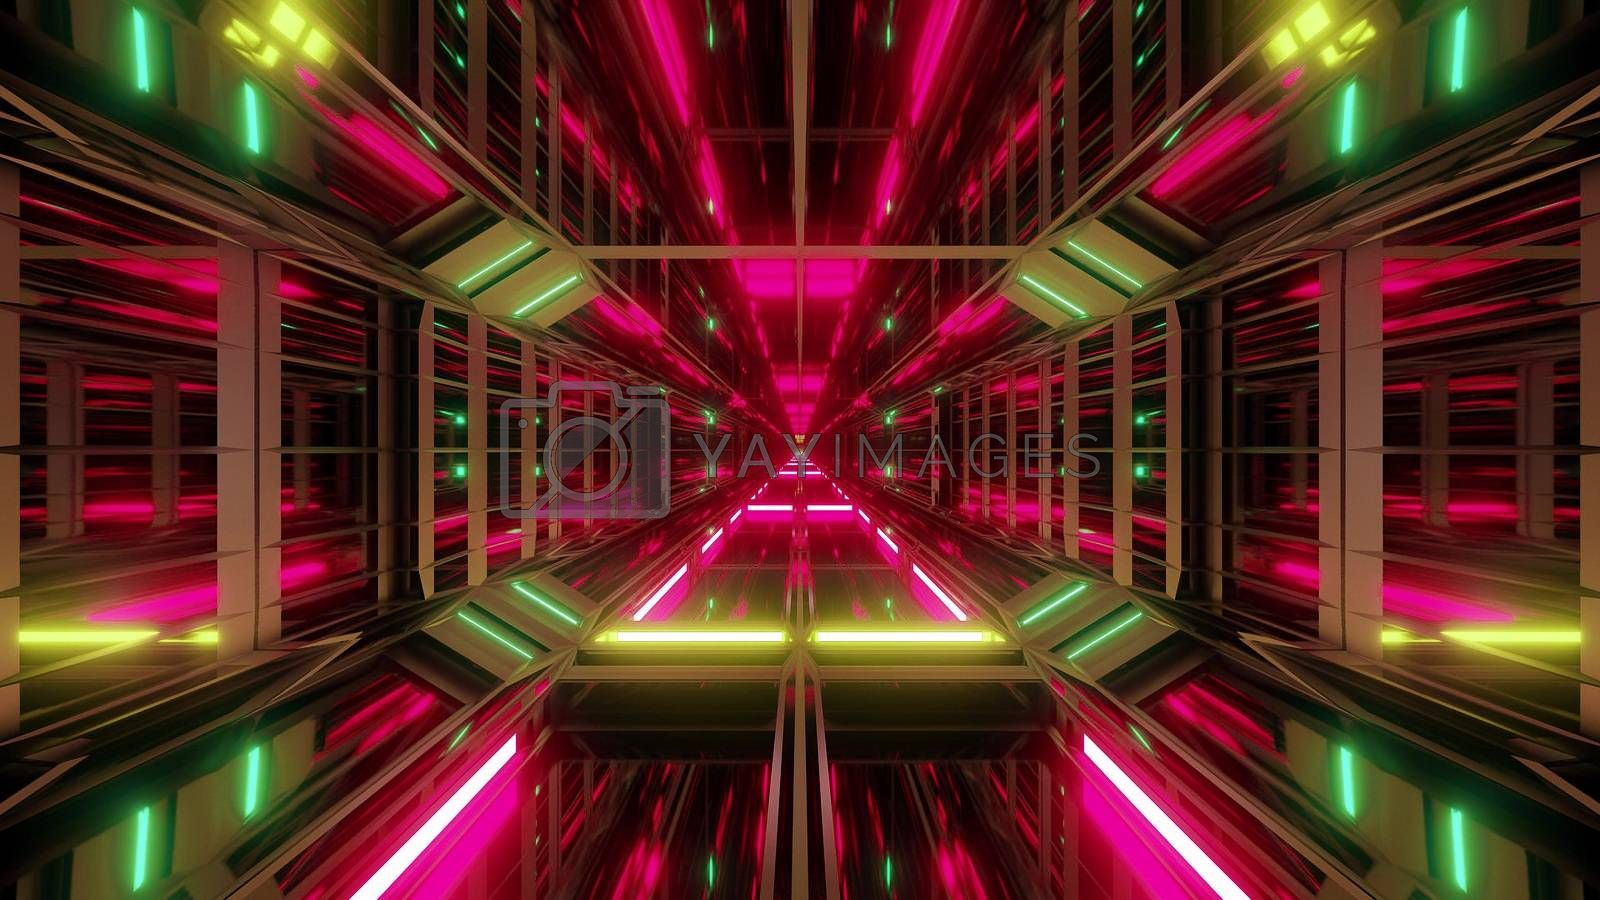 Royalty free image of futuristic scifi glass tunnel with nice reflections 3d illustration wallpaper background by tunnelmotions